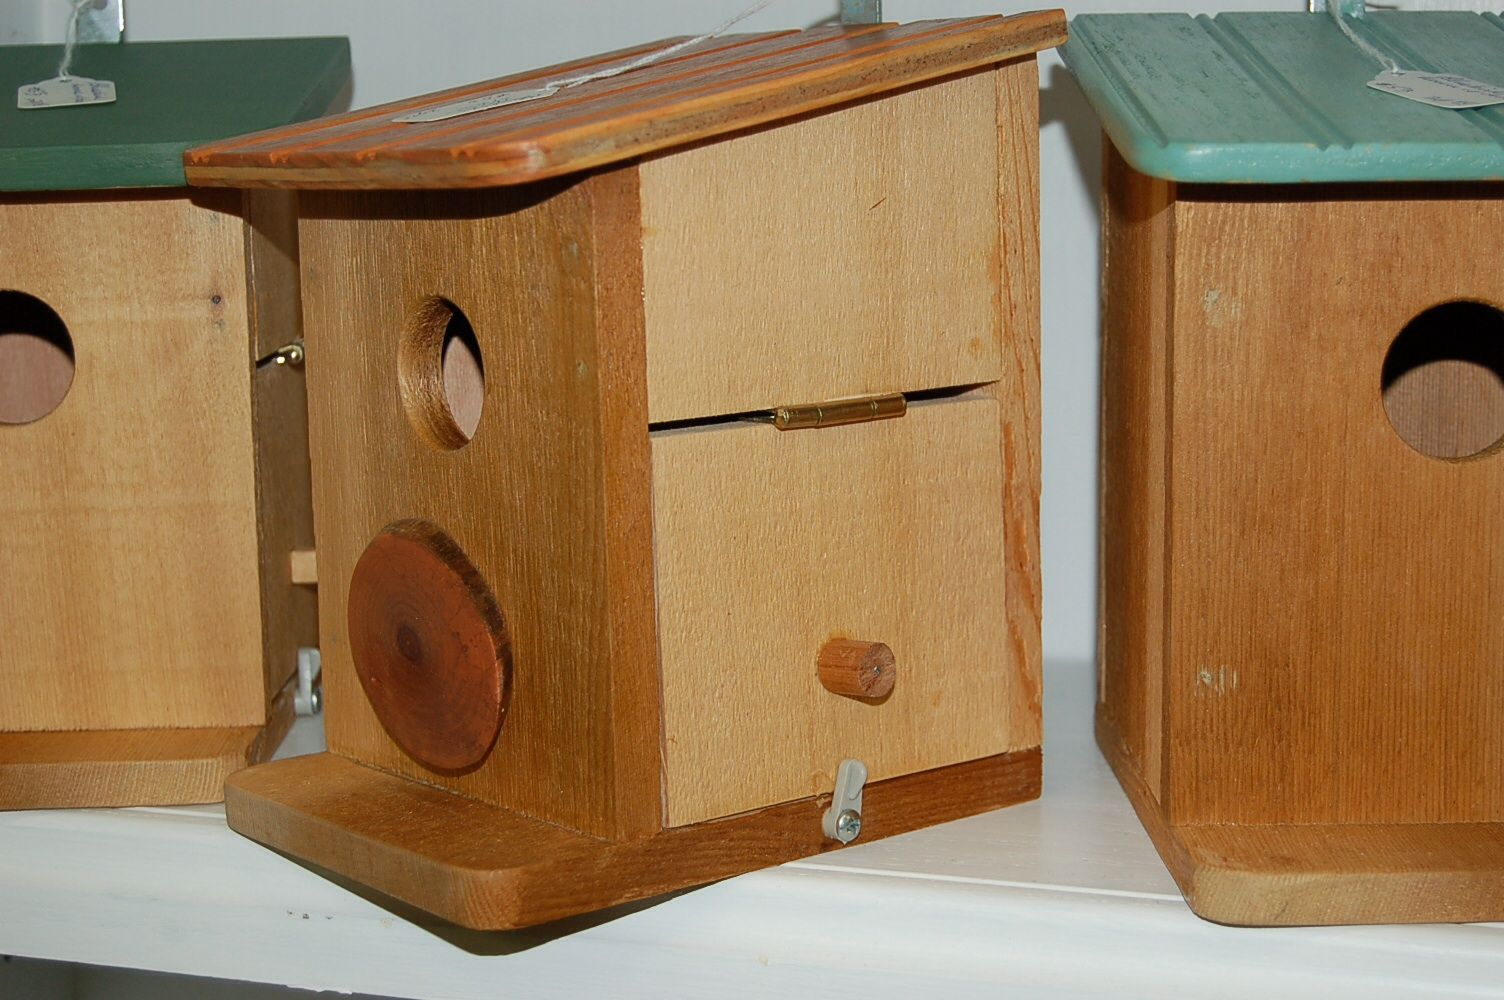 Handmade Birdhouse Cedar Shake in 2020 Bird houses